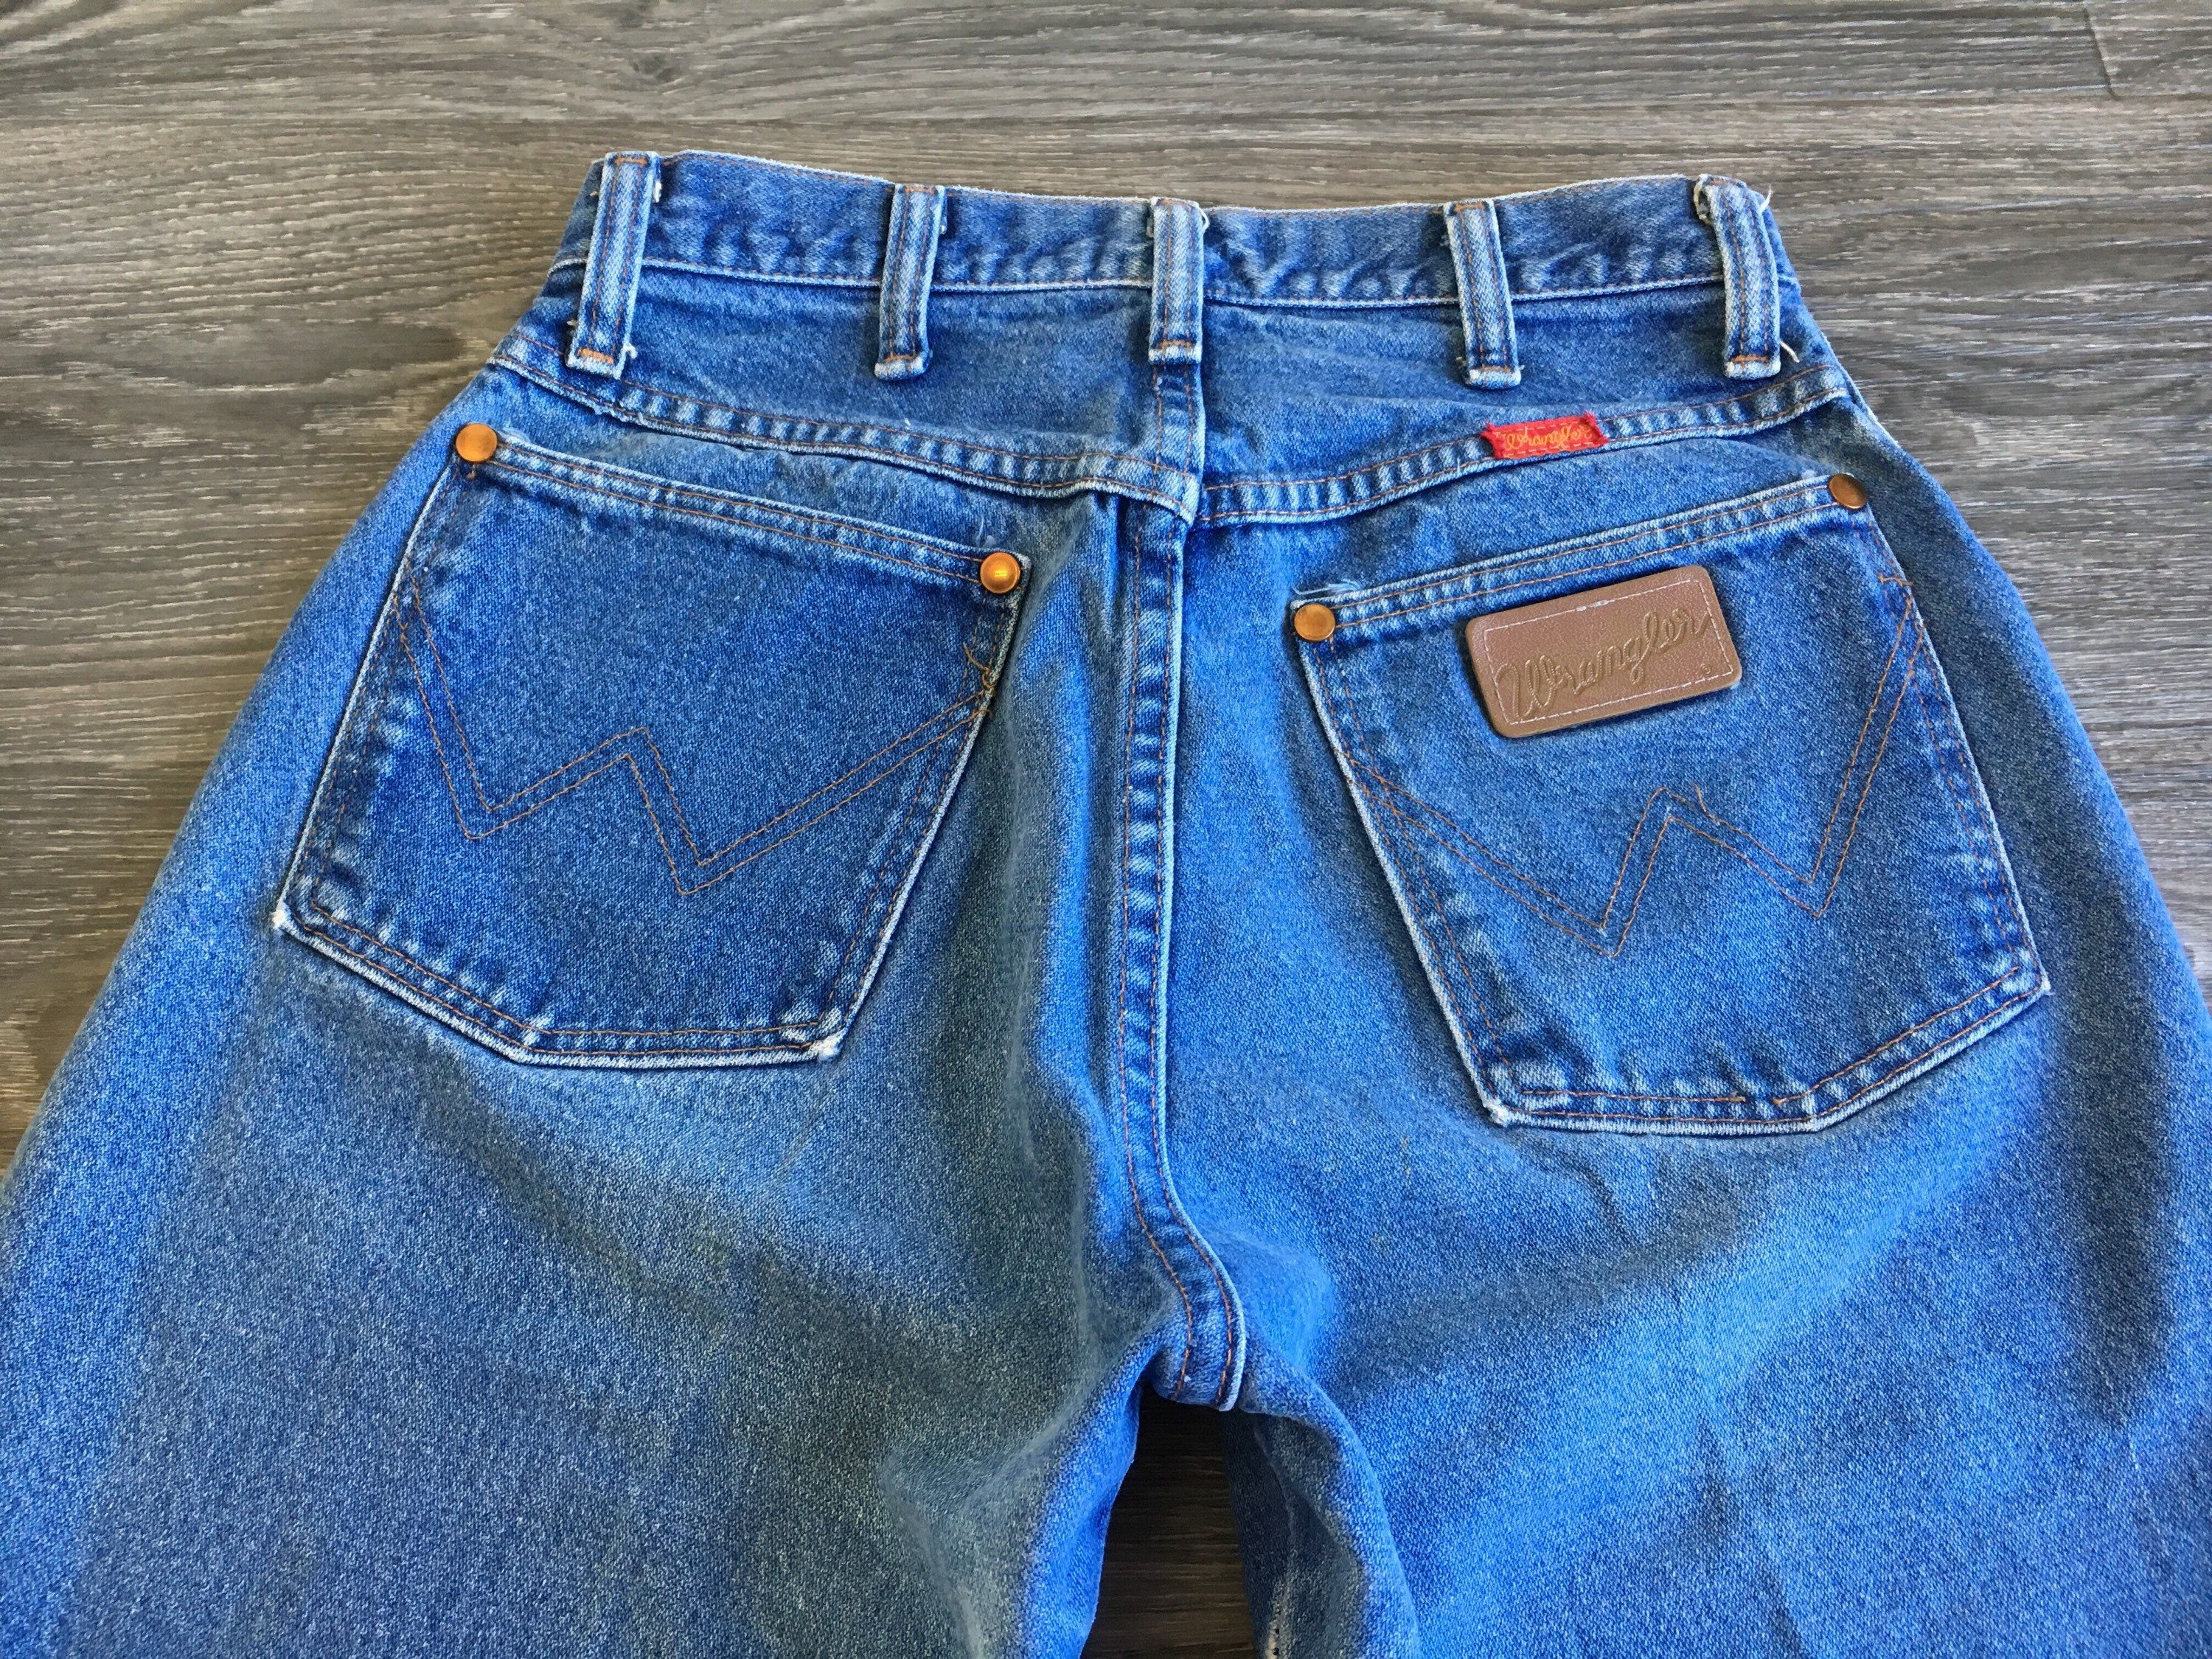 50648e1c5 Wrangler DENIM Jeans High Waist 80s 90s Vintage Blue Cowgirl Country USA  Made Wedgie Fit High